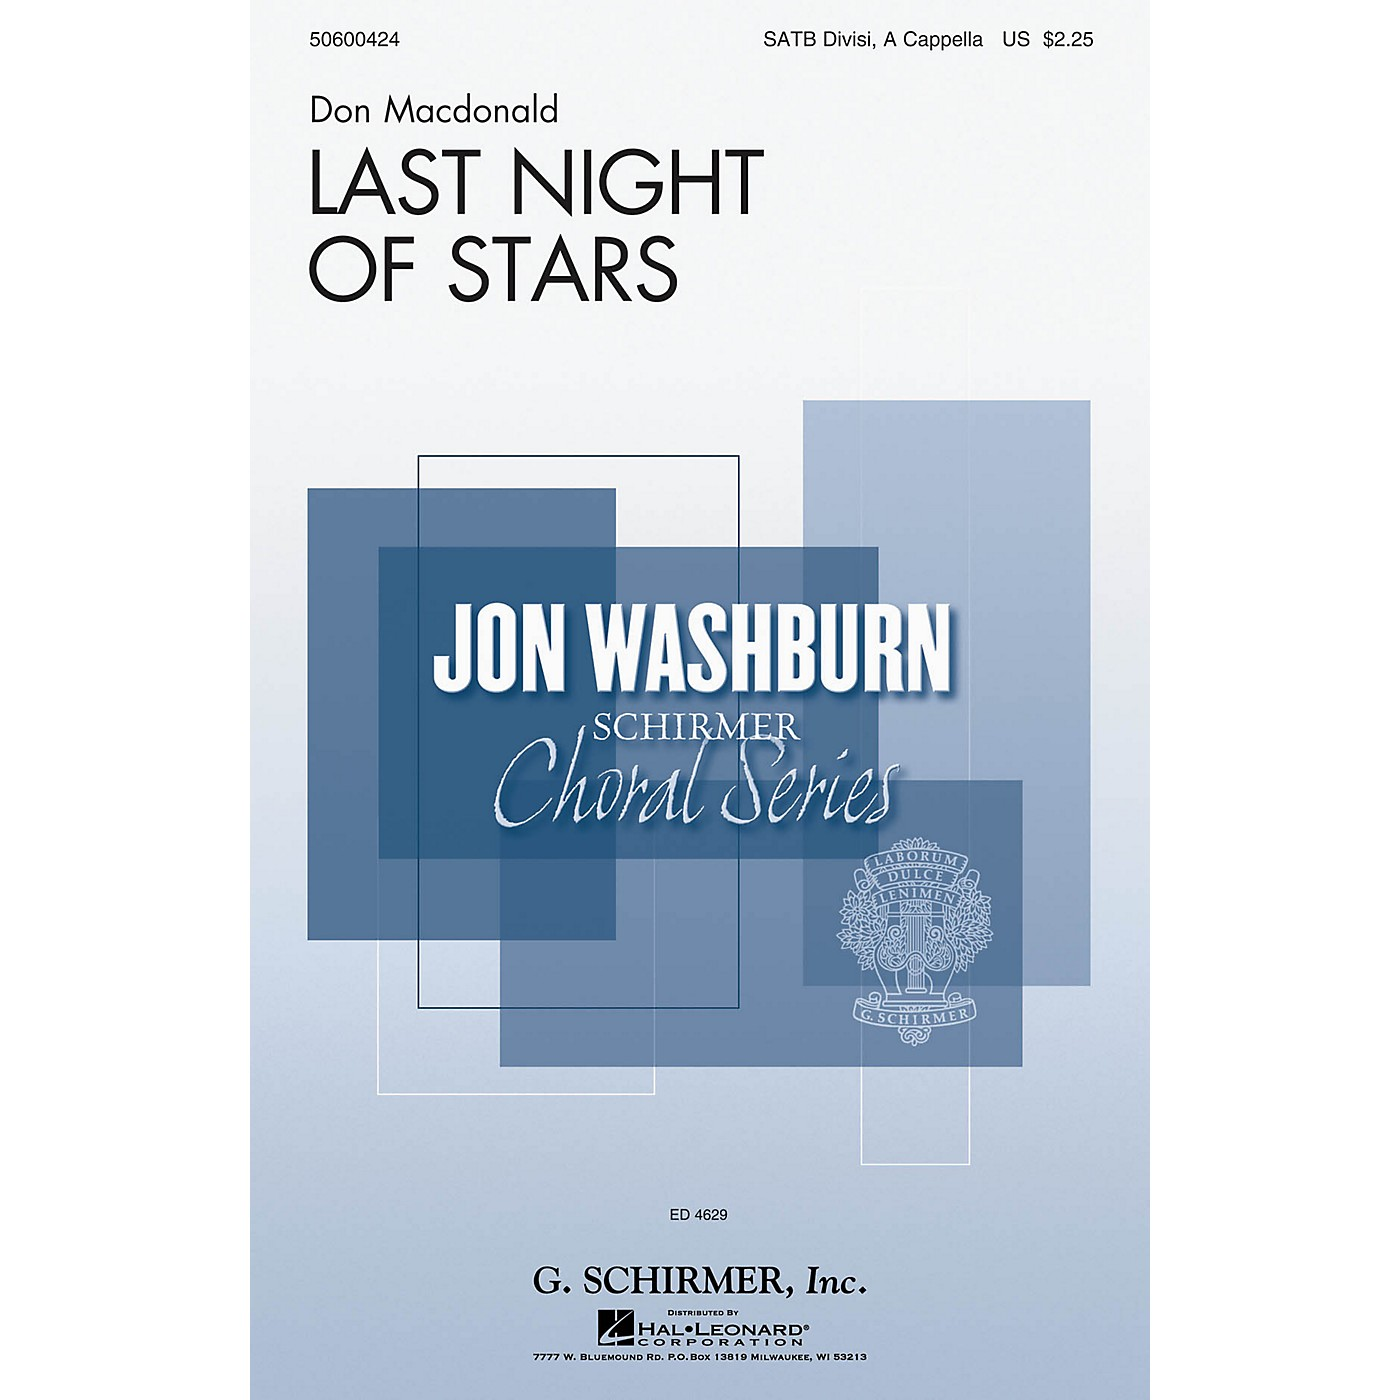 G. Schirmer Last Night of Stars (Jon Washburn Choral Series) SATB DV A Cappella composed by Don Macdonald thumbnail